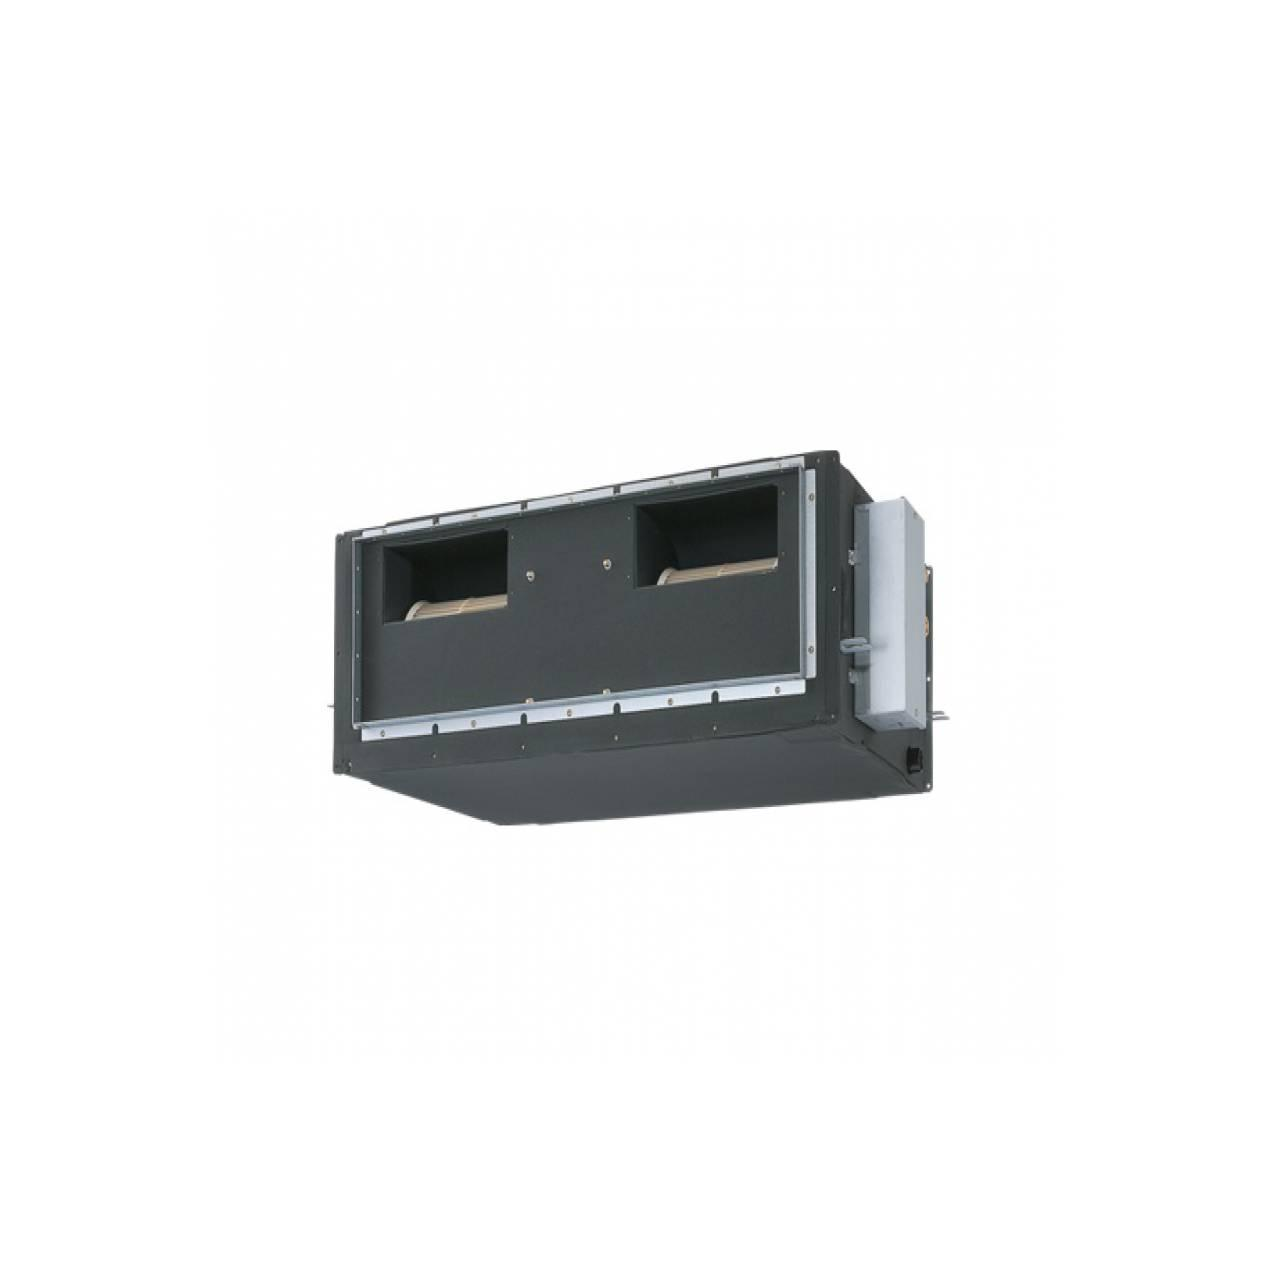 AC Ceiling Concealed Duct R410A Panasonic CS-F43DD2E5 5 PK Malaysia